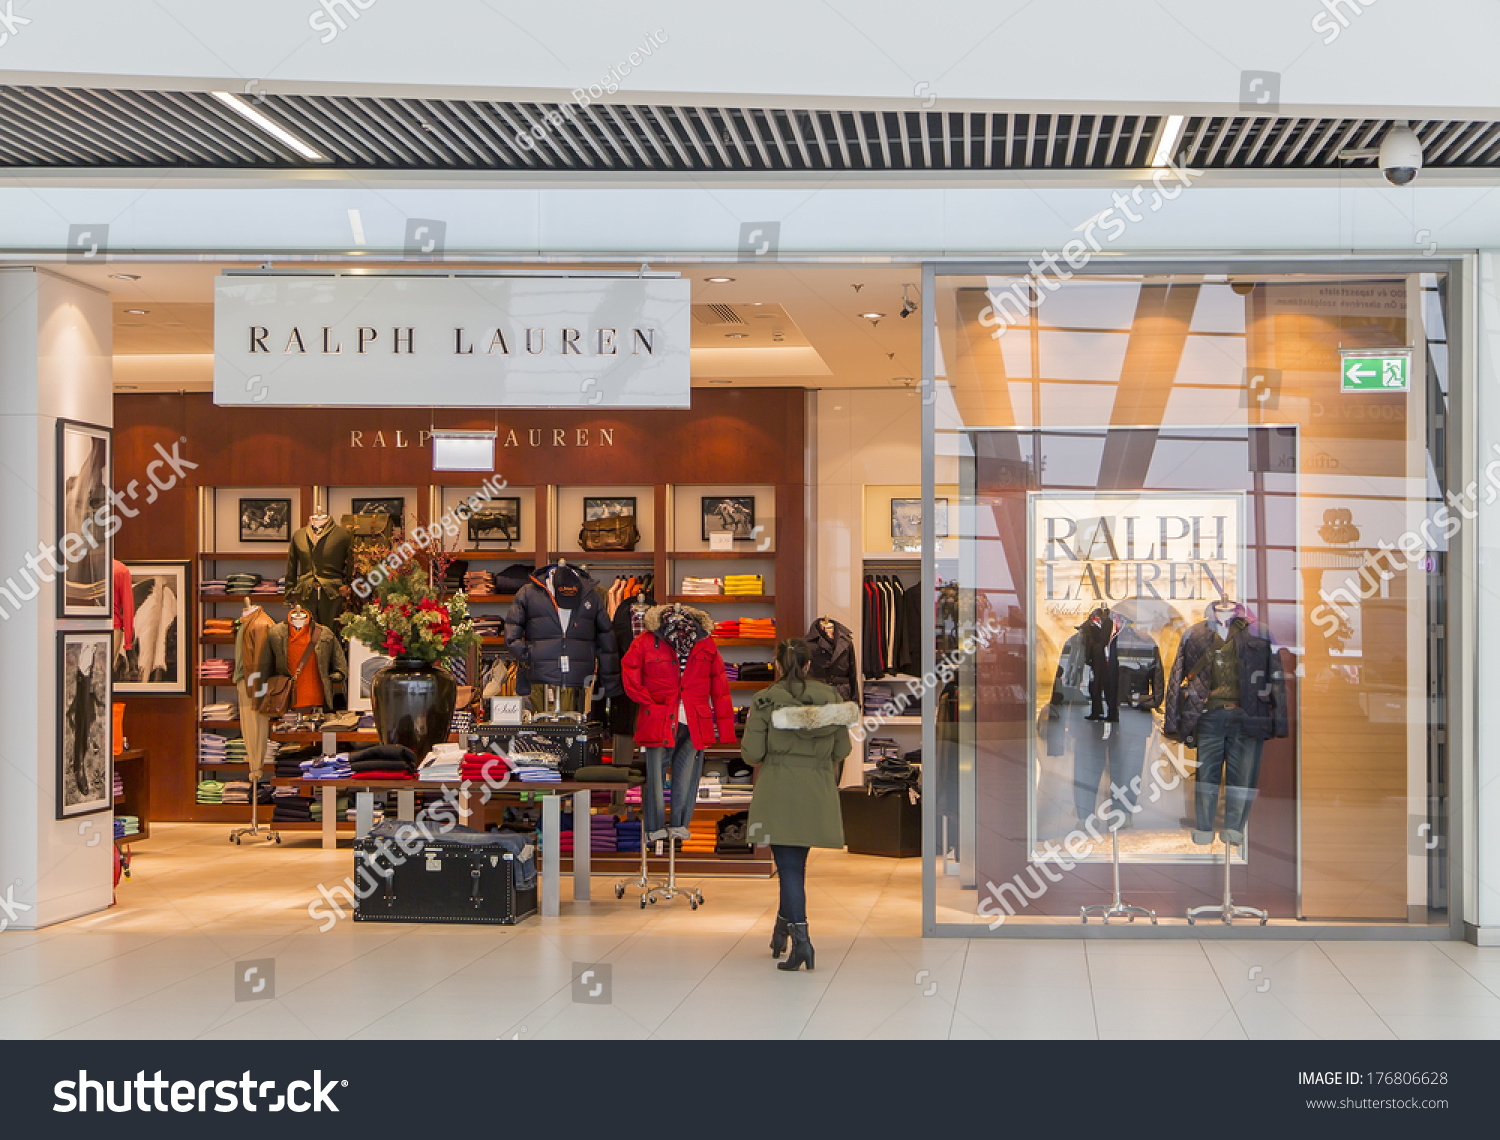 polo ralph lauren outlet budapest - WörterSee Public Relations dd282b0fc7f